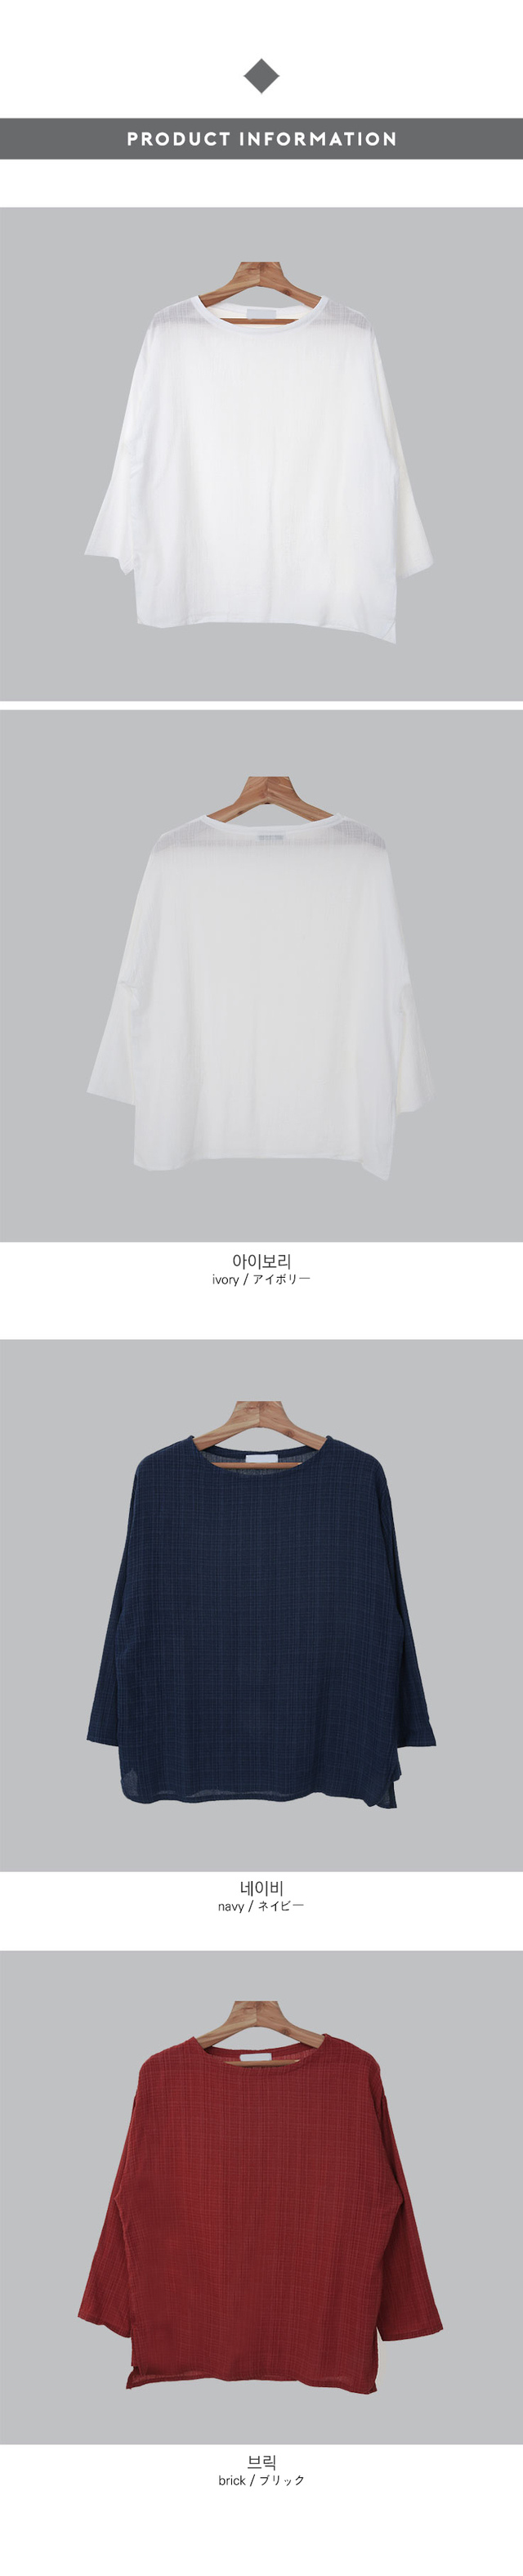 Manner-blouse